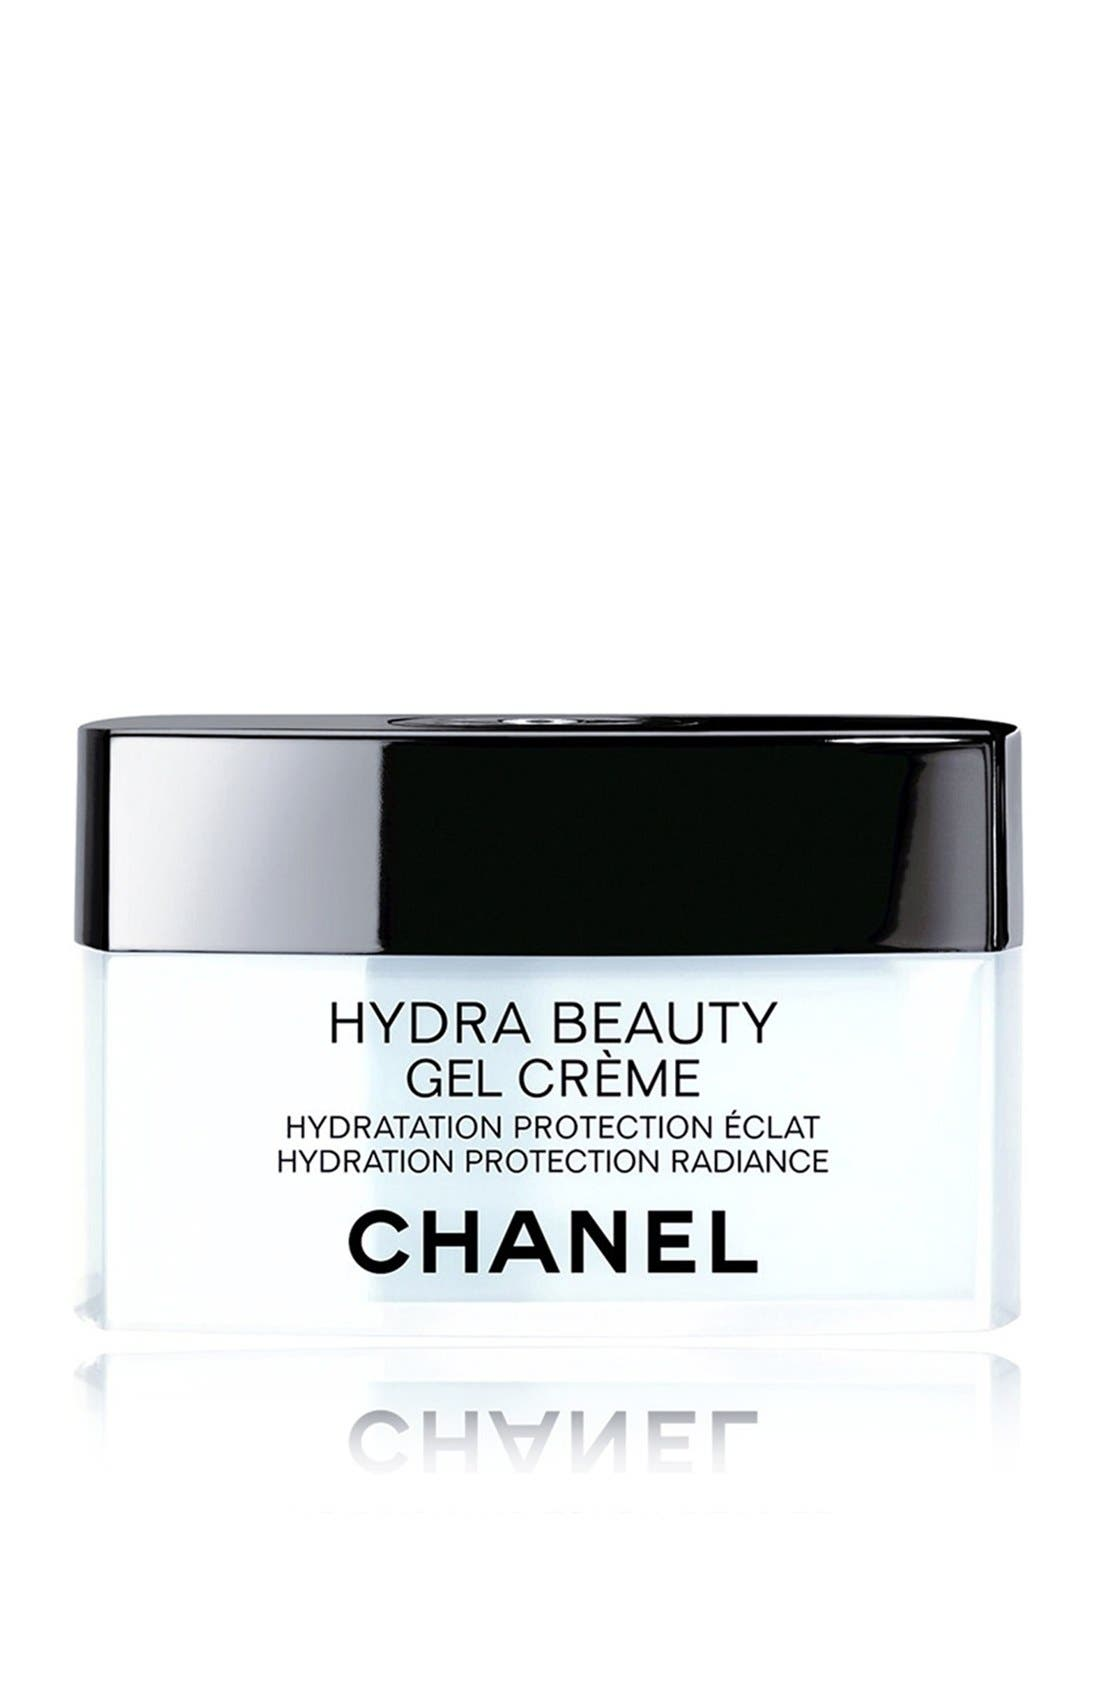 HYDRA BEAUTY GEL CRÈME<br />Hydration Protection Radiance,                         Main,                         color, NO COLOR